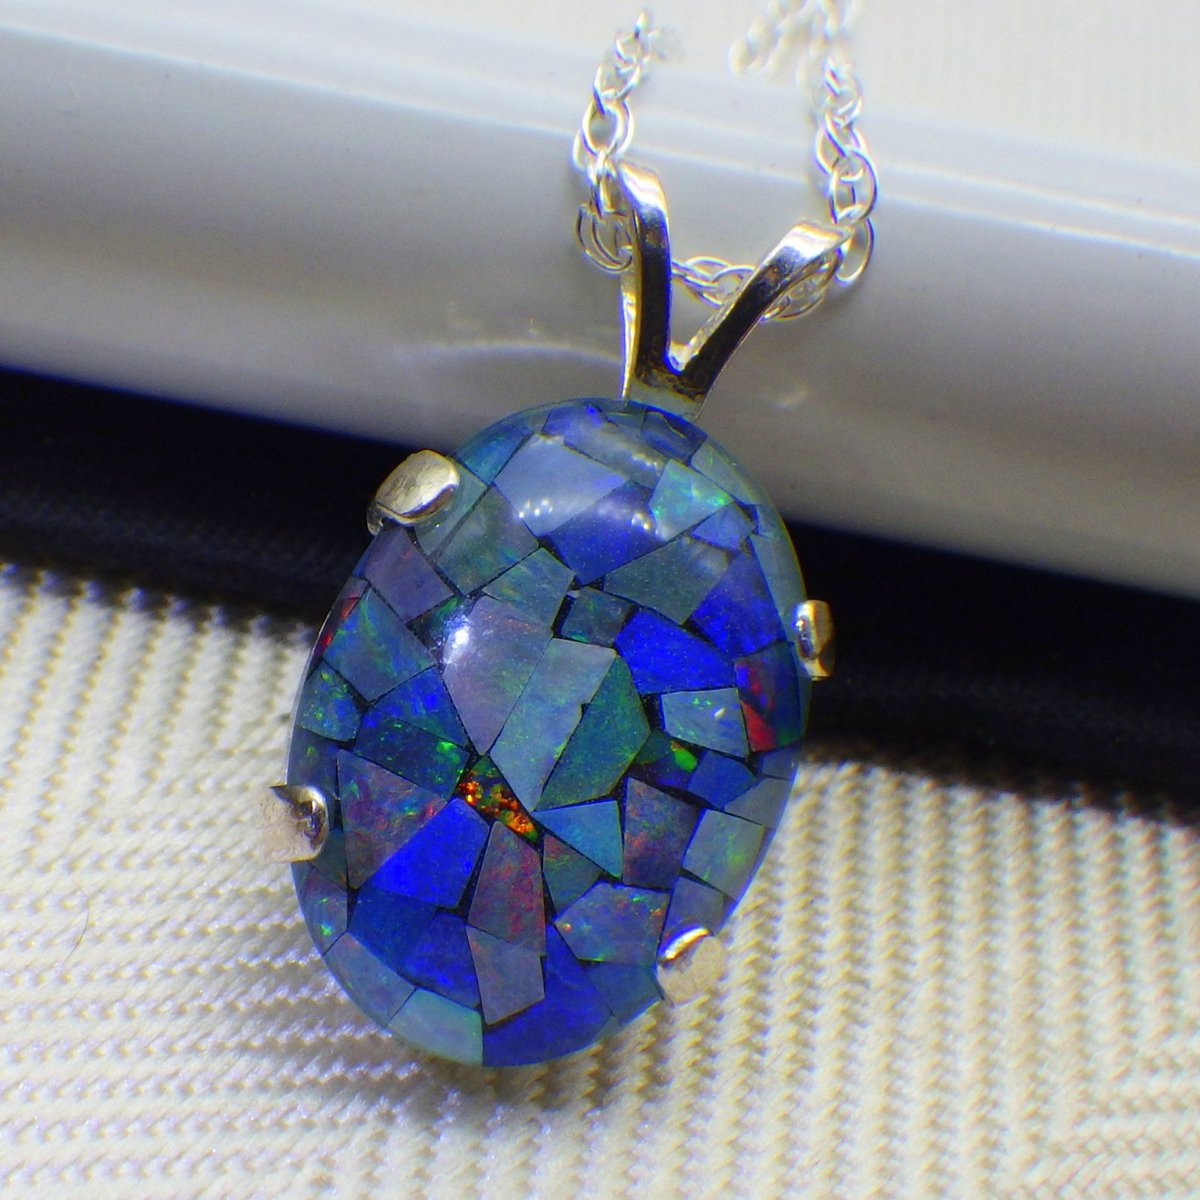 Excited to share the latest addition to my #etsy shop: Vintage Australian Opal Mosaic Pendant Necklace, Sterling Silver Mounting and Chain, Genuine Opal, 18x13 Size, Ladies Jewelry, Gemstones,  https:// etsy.me/2nIvlcM  &nbsp;   #jewelry #necklace #blue #silver #women #opal<br>http://pic.twitter.com/XeSBwp6y4r